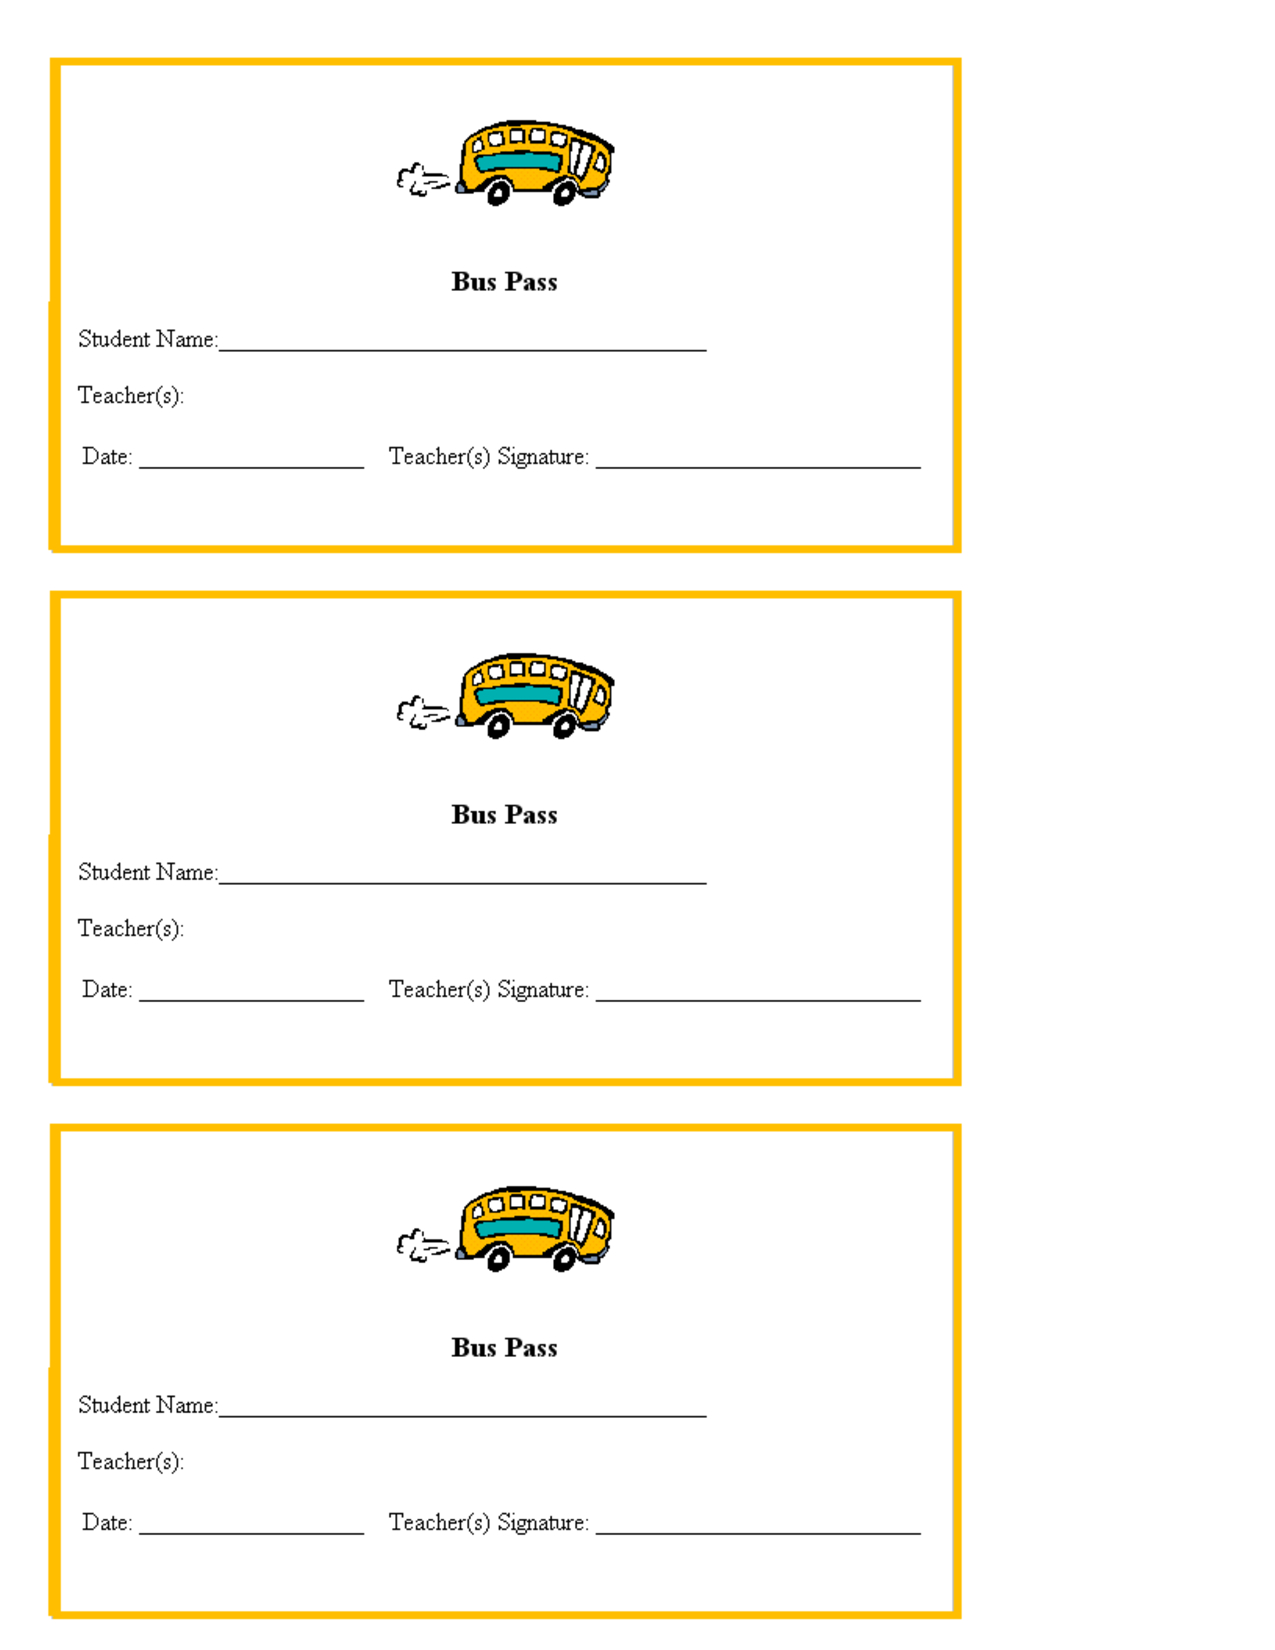 Hall Pass Template For Teachers | Teacher Printables School Bus - Free Printable Hall Pass Template